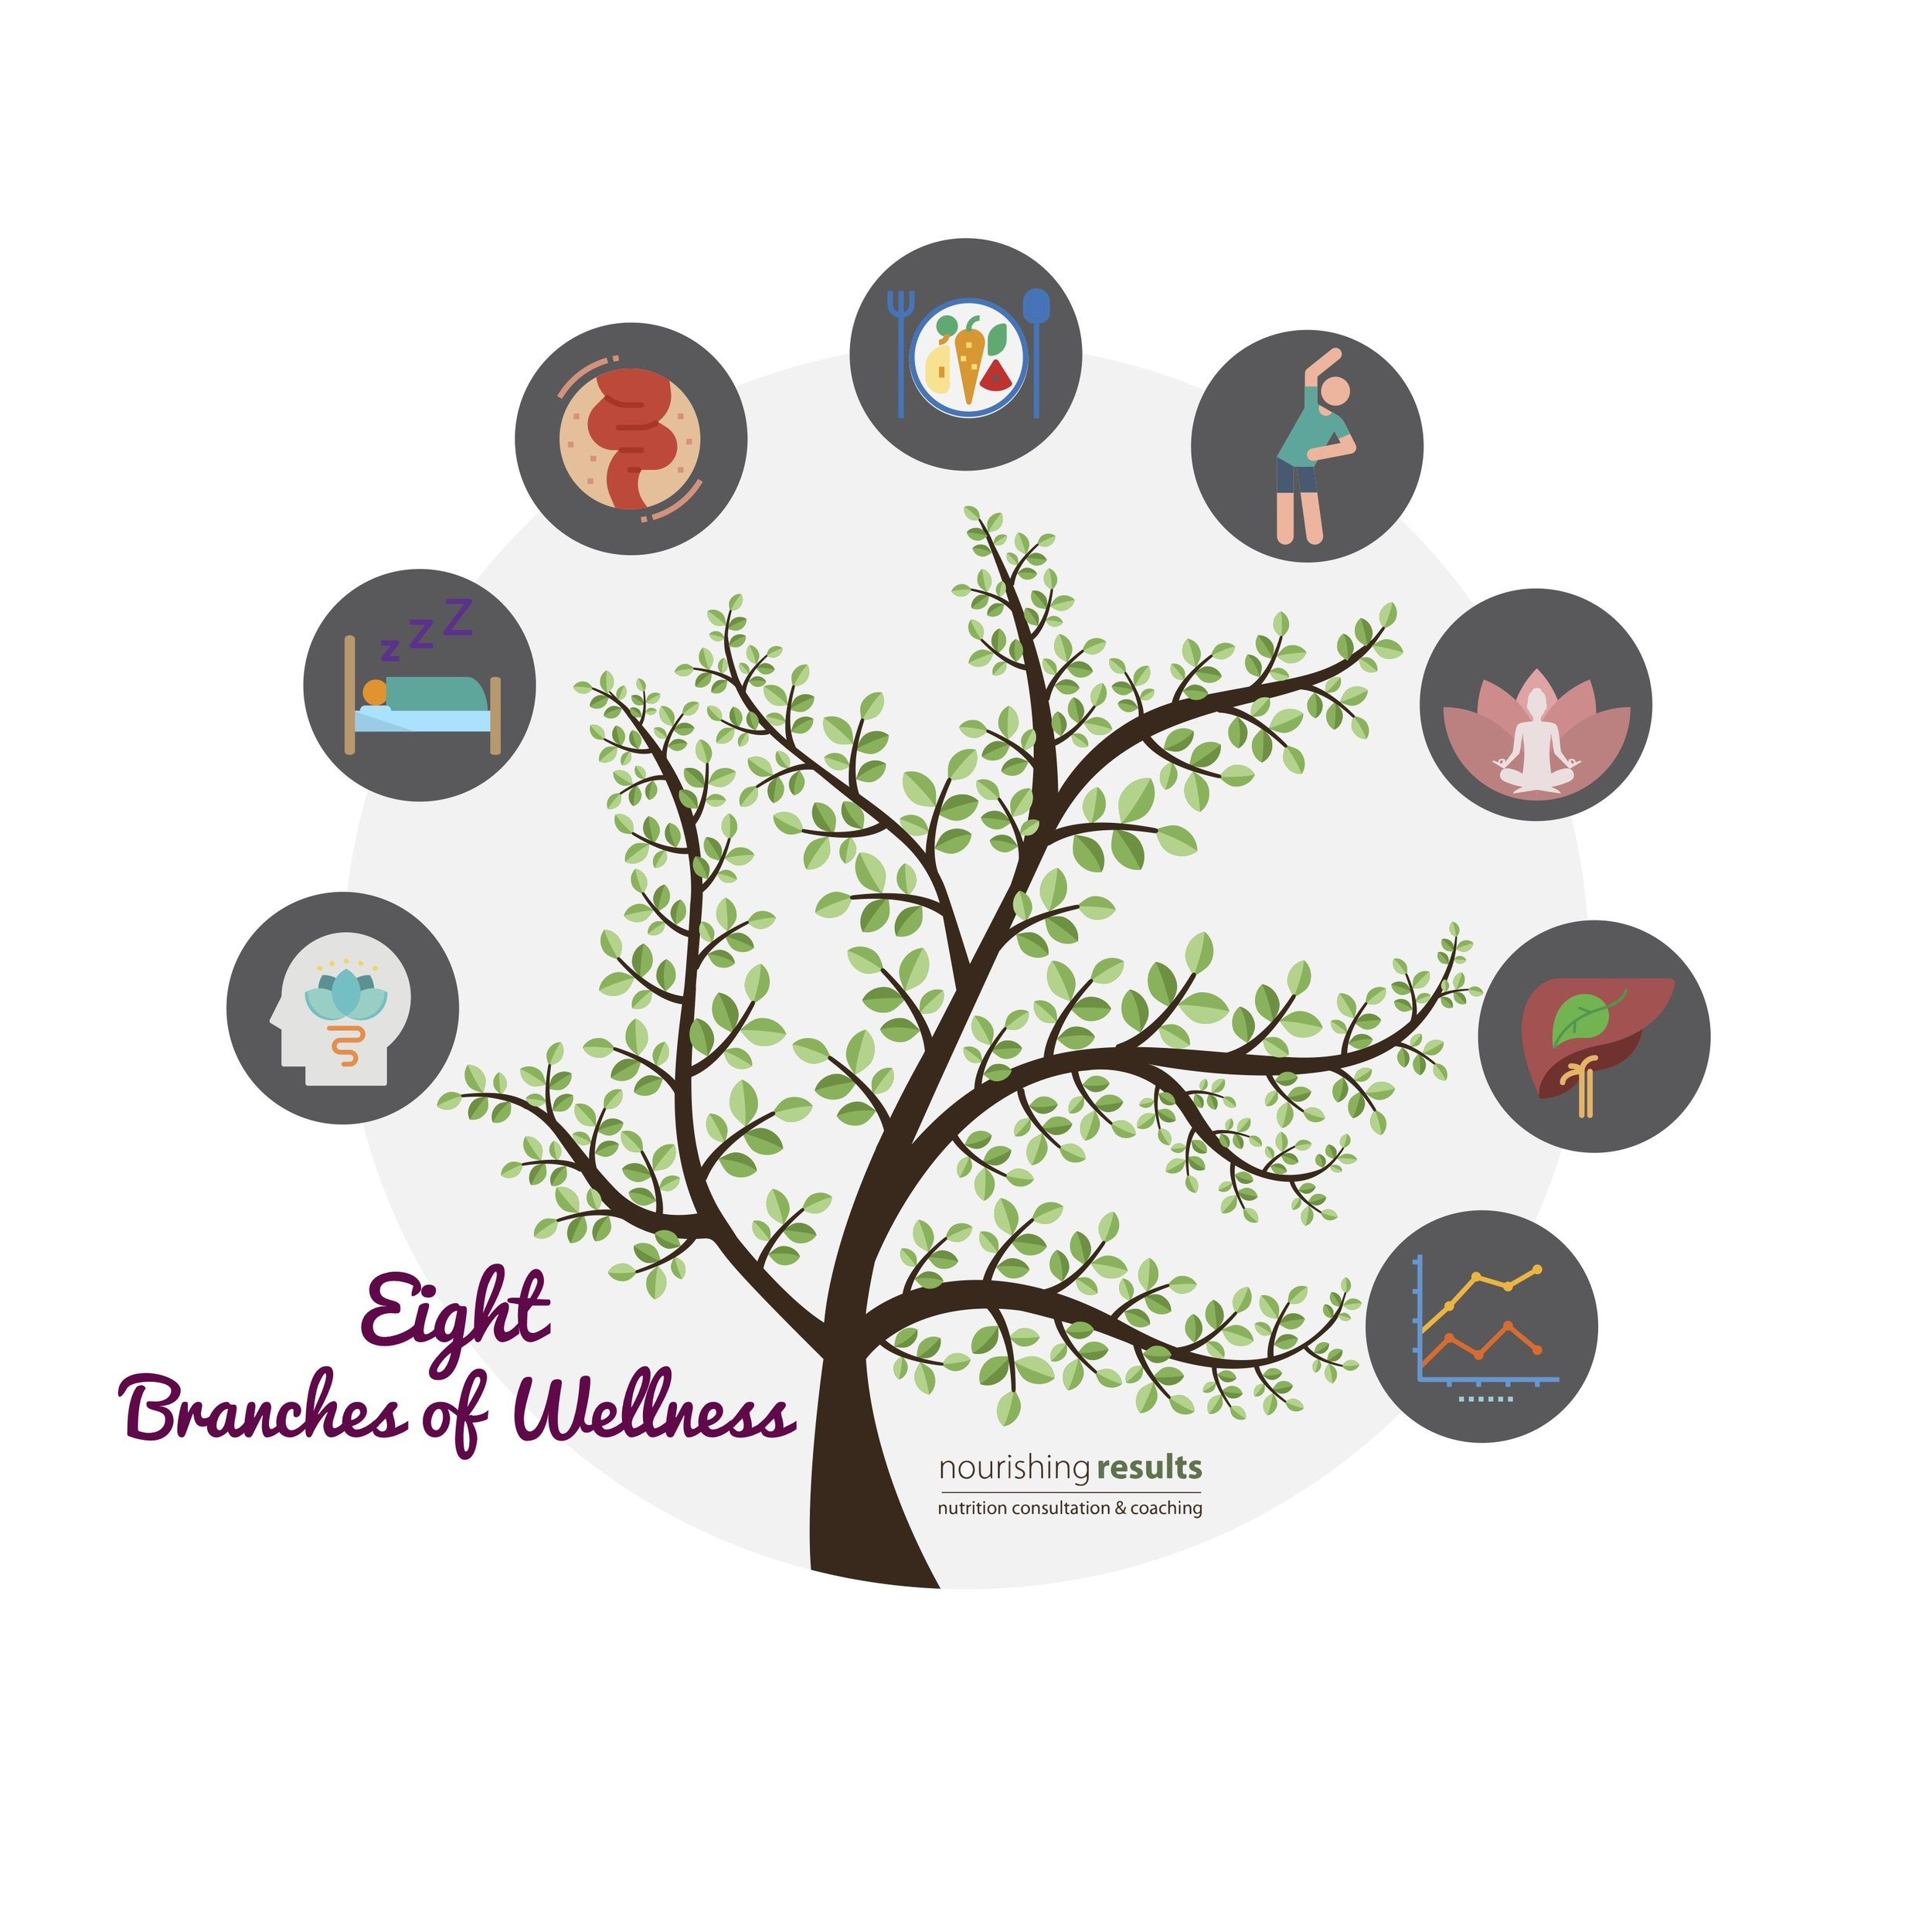 8 branches of wellness_images only-logo-circle-2.jpg